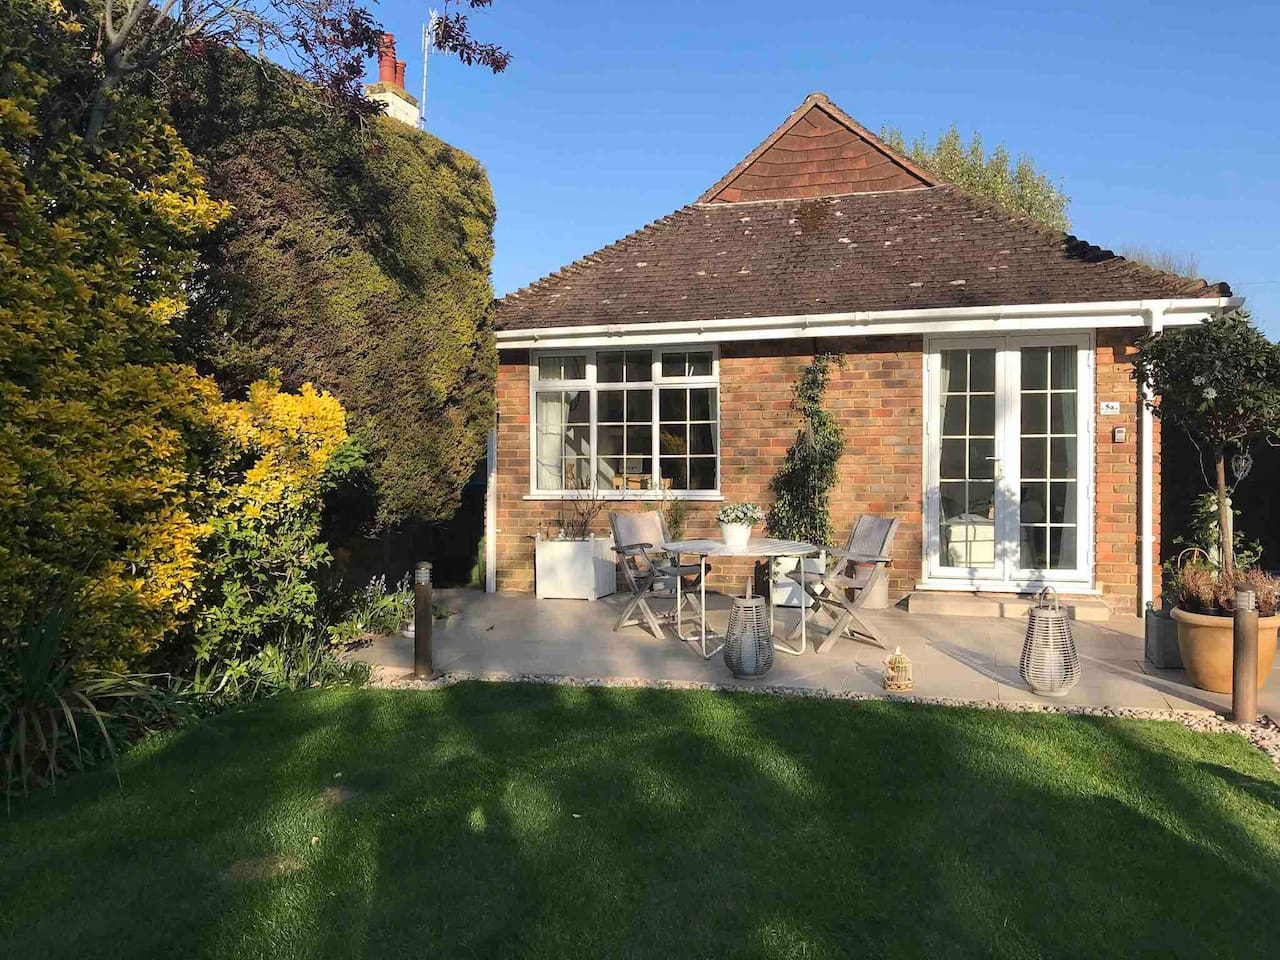 The bungalow has its own patio which is a quiet area to enjoy a meal in the sun or views of the pretty garden.